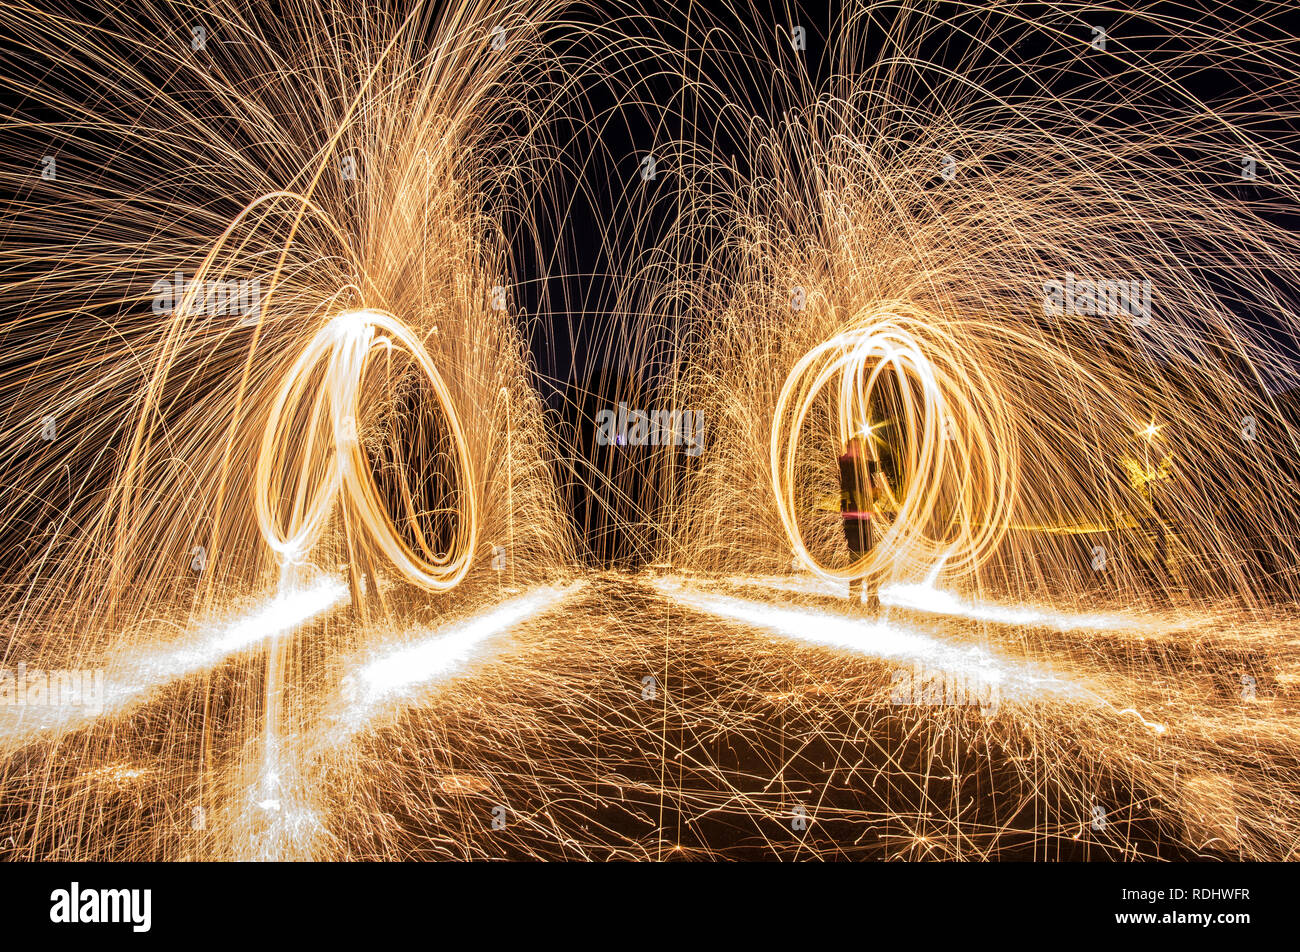 Steel wool photograph at night, long exposure photography workshop Stock Photo